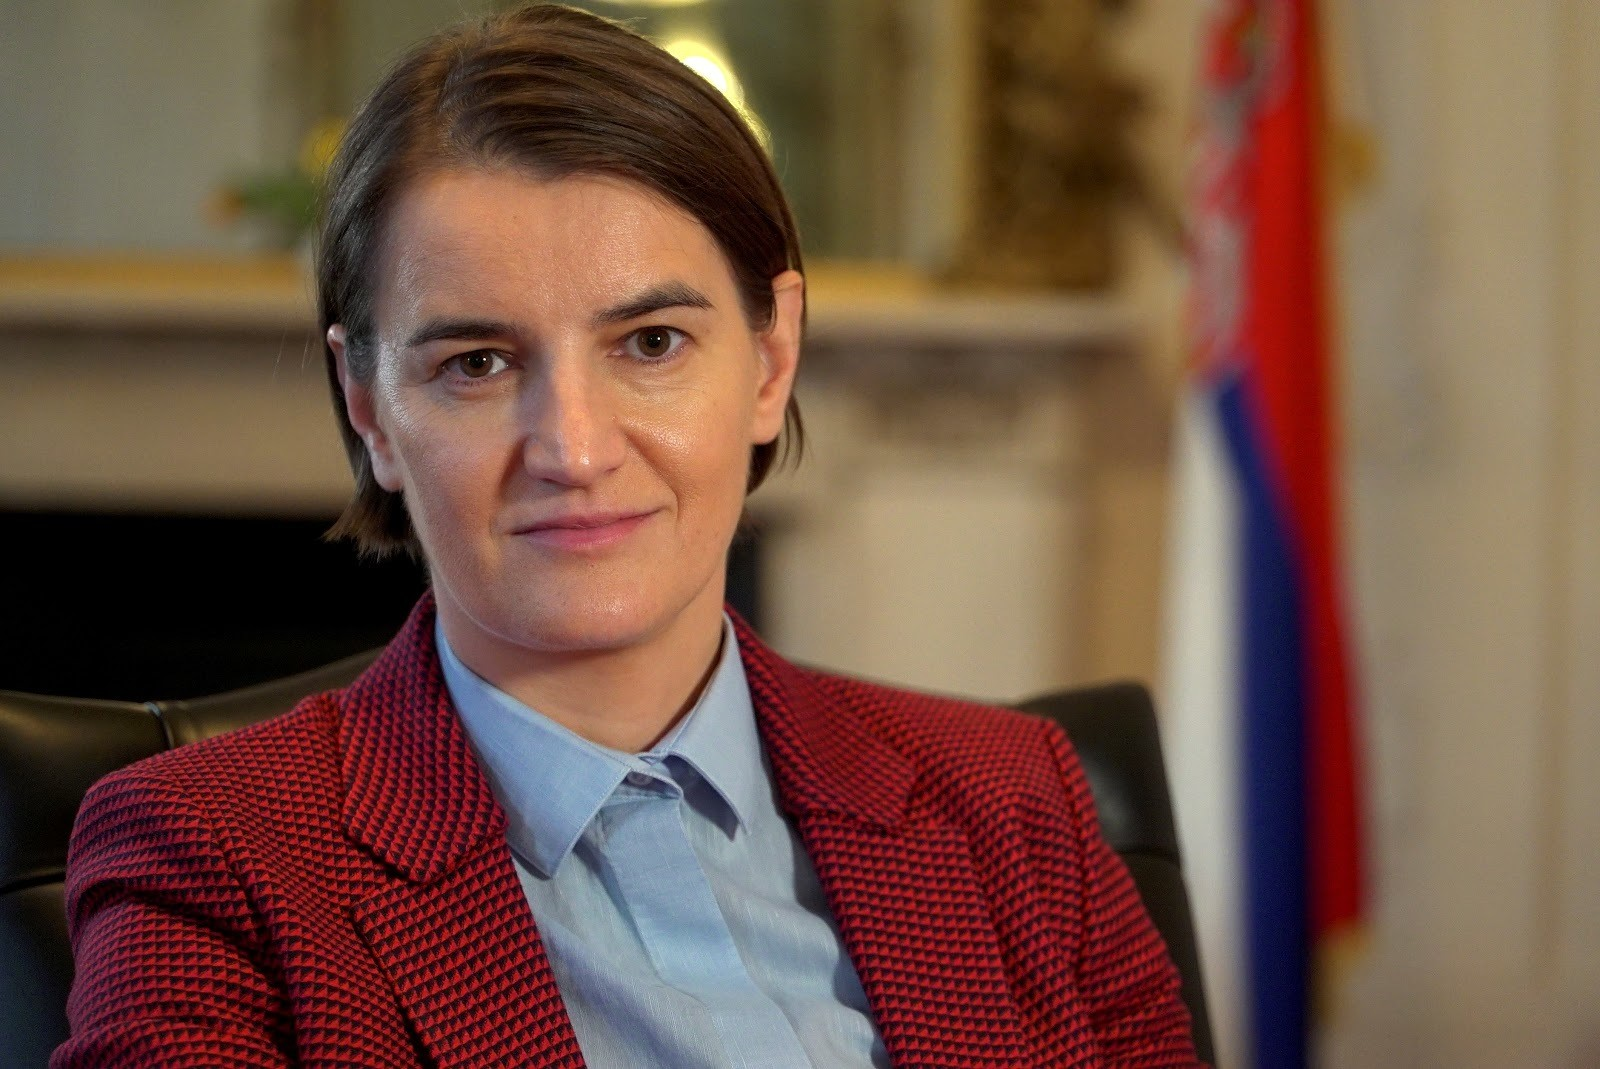 Serbia's Prime Minister Ana Brnabic poses for a portrait after an interview at Serbia's Embassy in London, Britain, February 25, 2018. REUTERS/Will Russell - RC13360E48C0